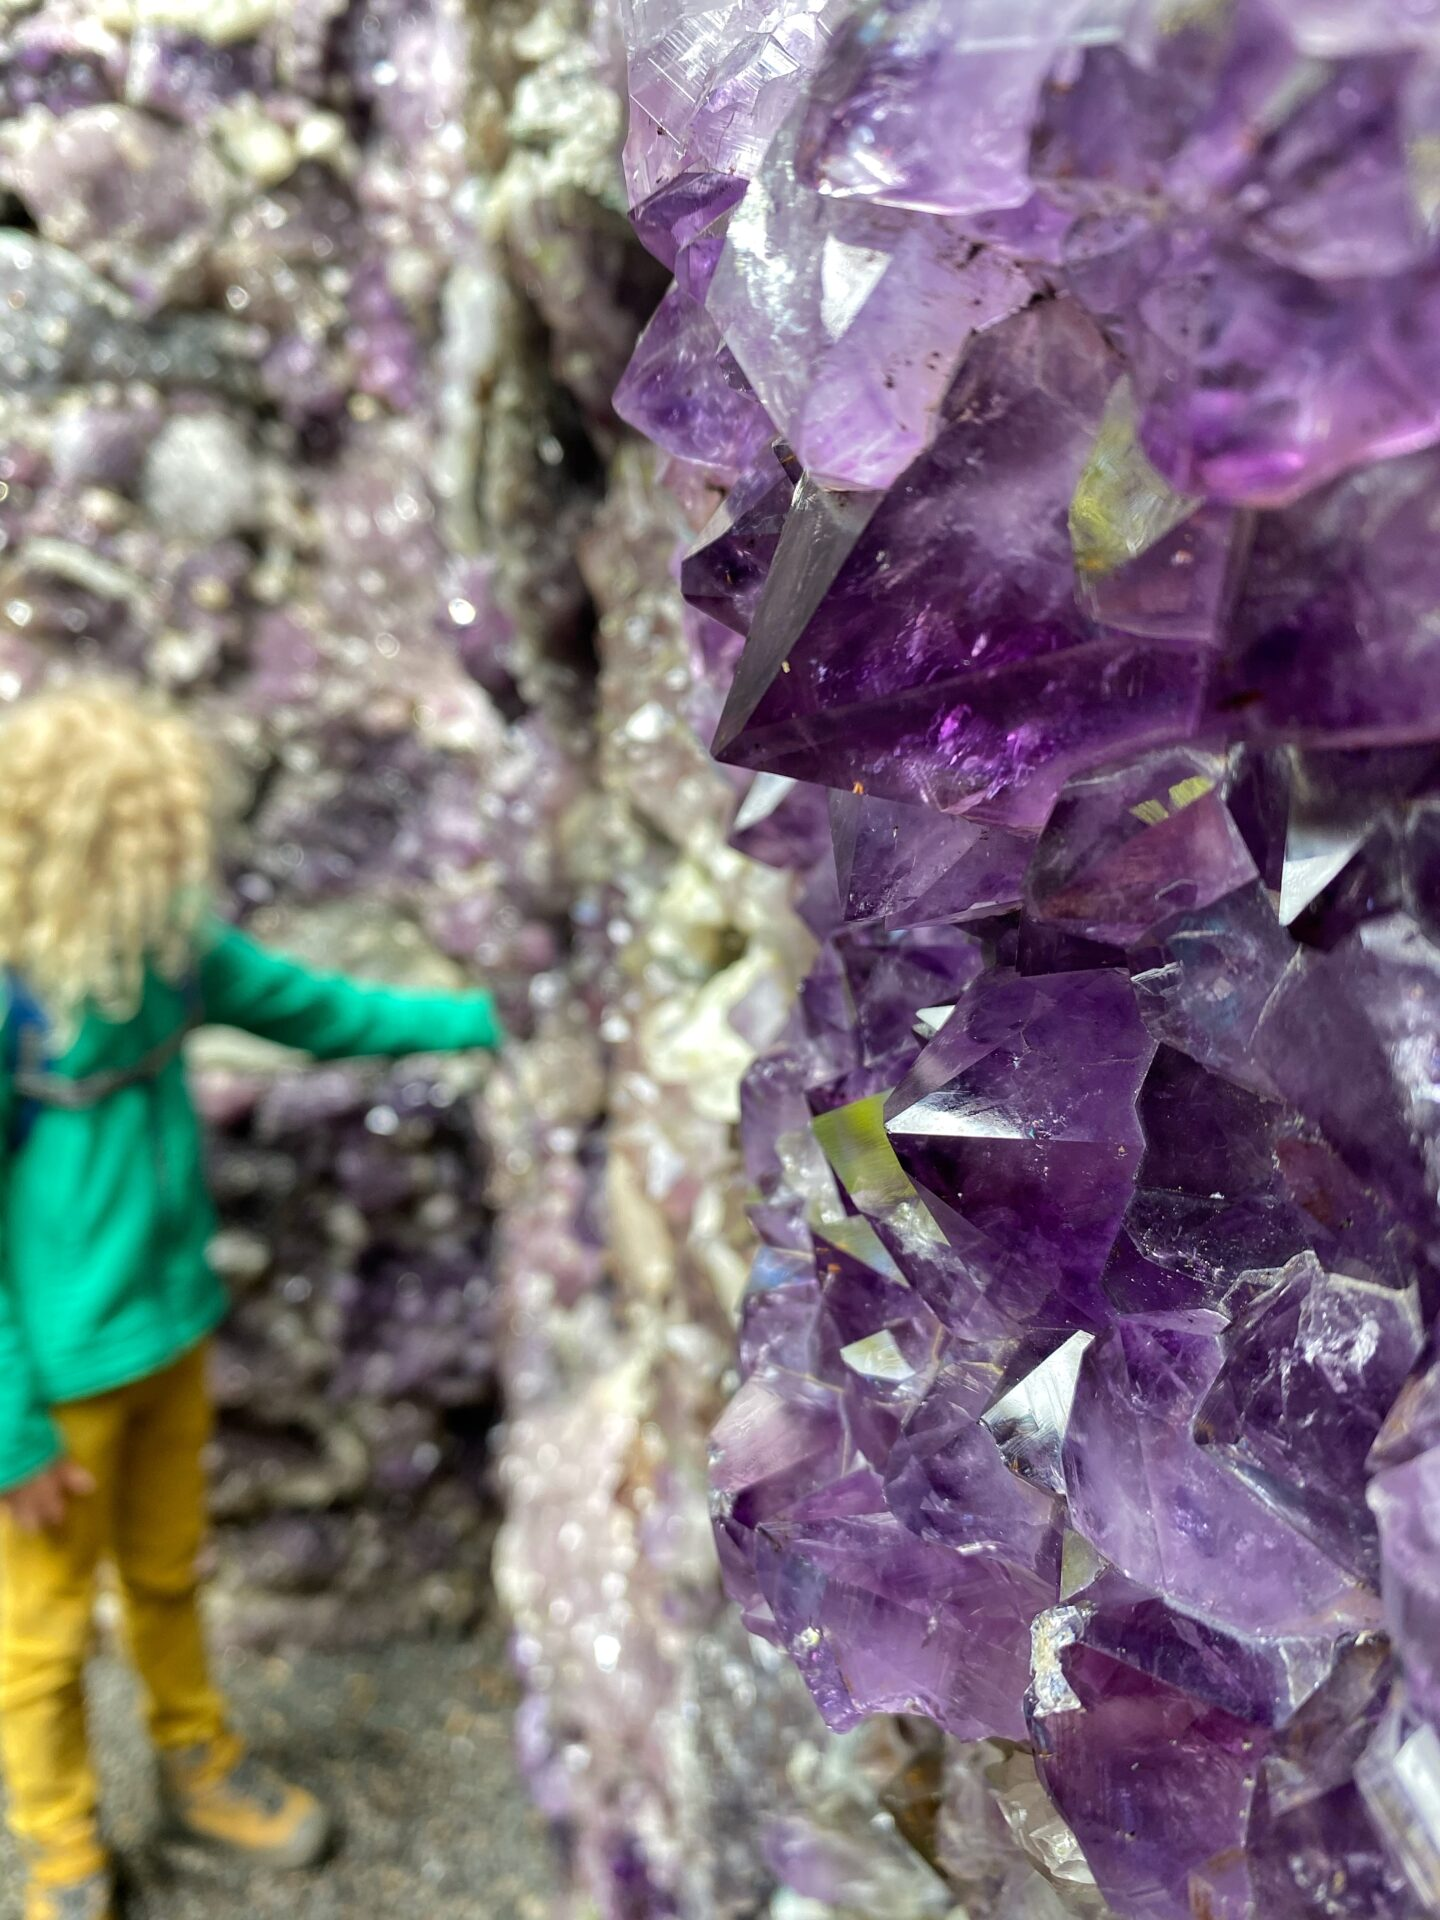 child touching amethysts in a 'cave' at Jupiter artland